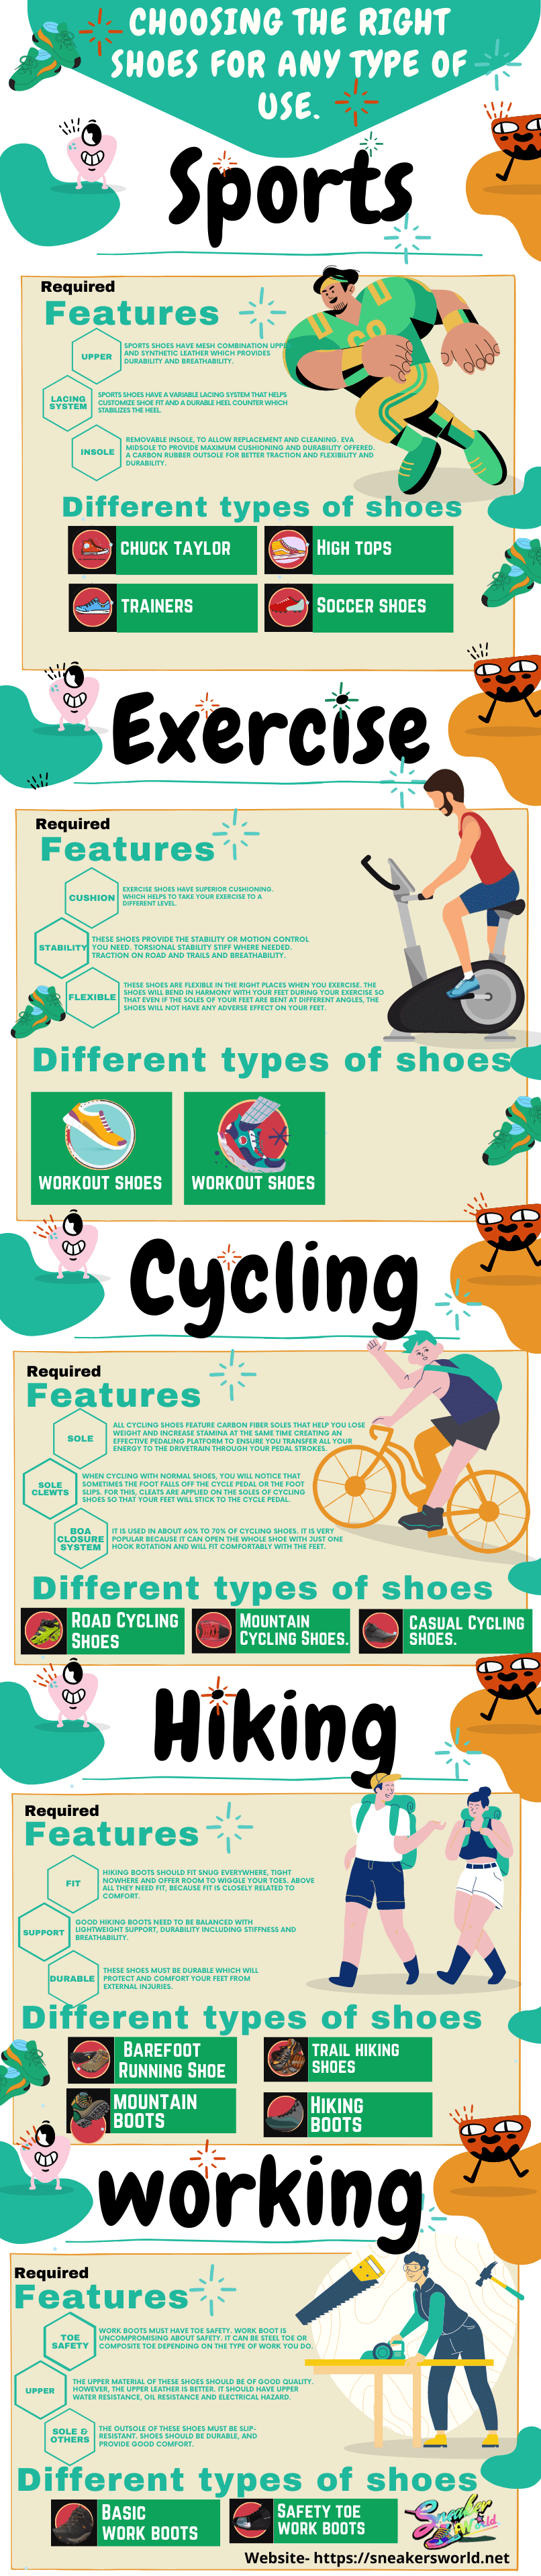 How to choose shoes for any type of use? Let's choosing the right shoes for any type of use